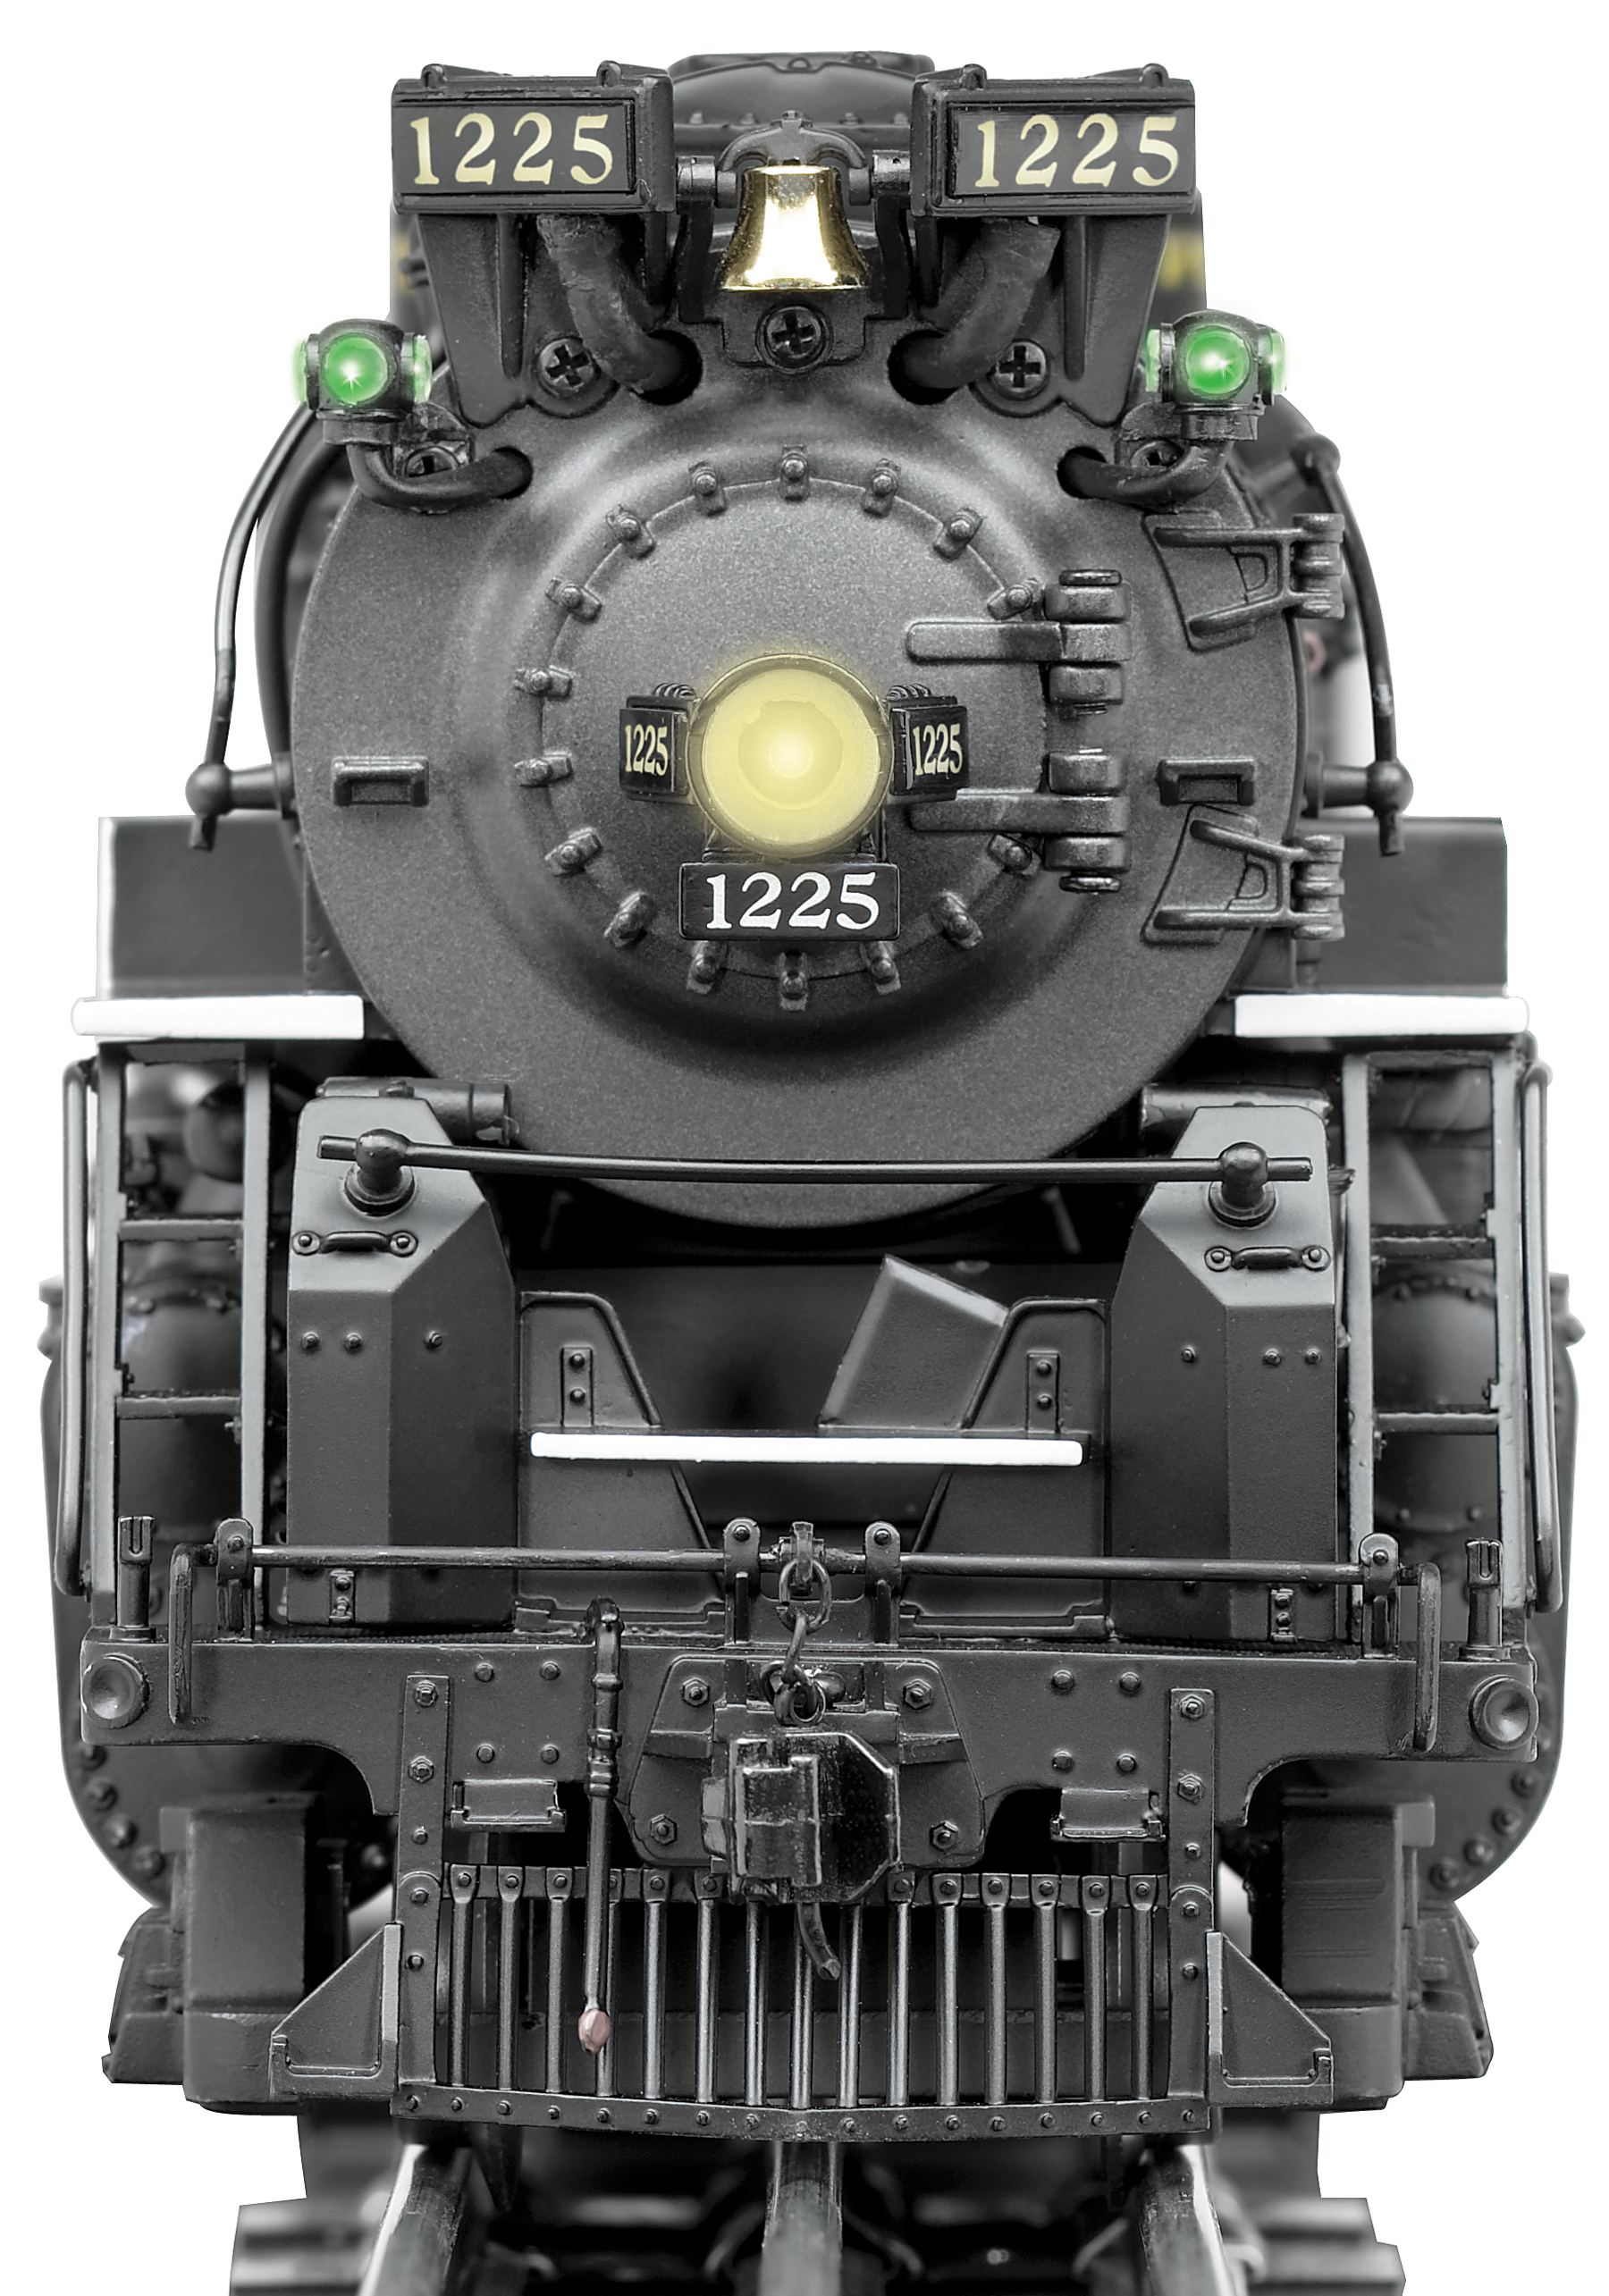 2-8-4 Berkshire / Scale LEGACY Manual